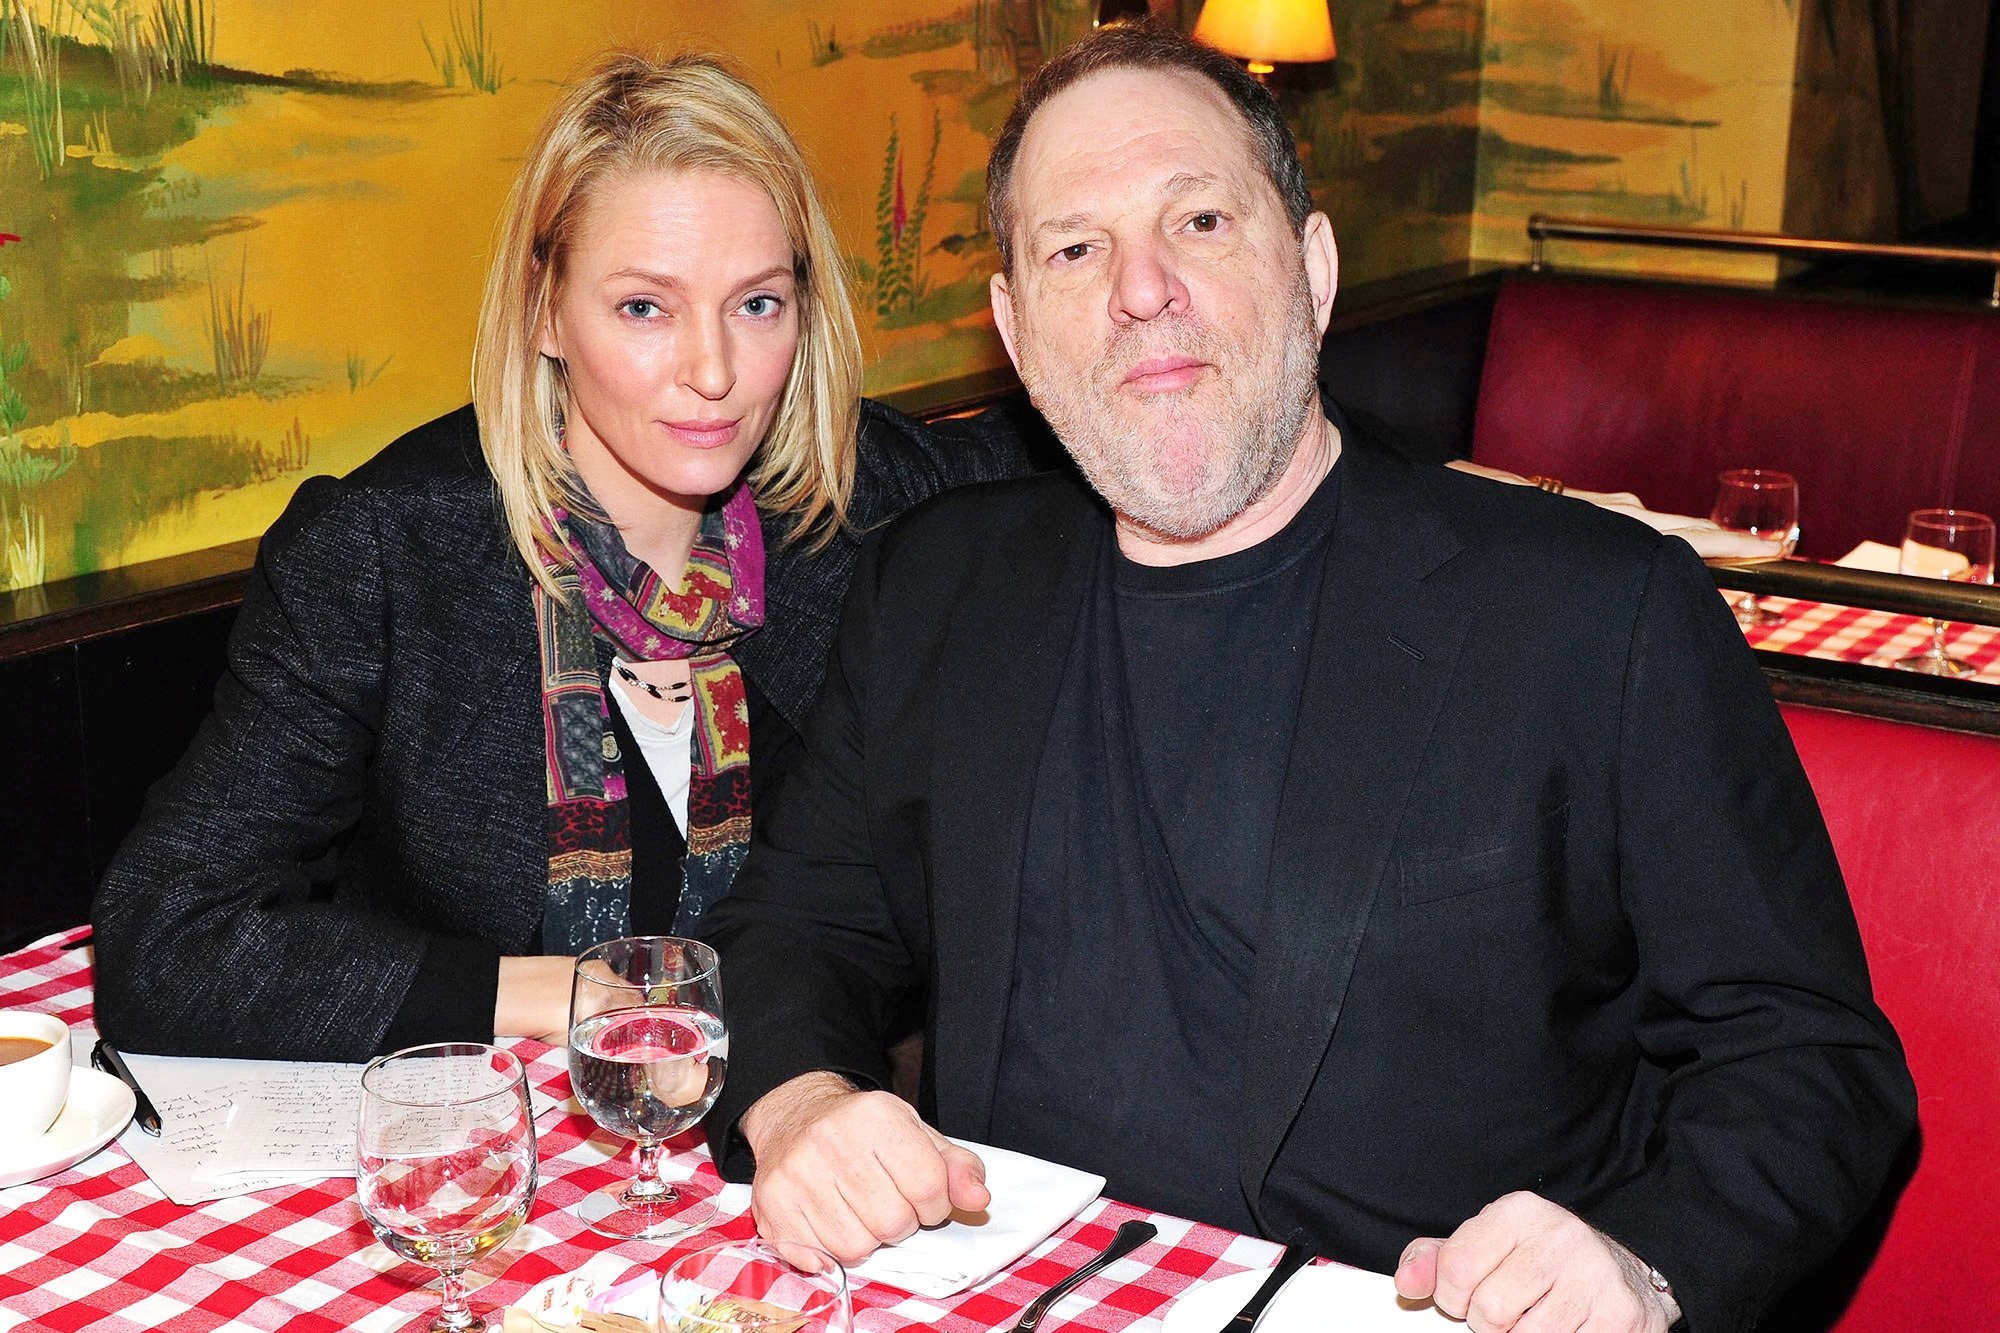 Una Thurman accusa Weinstein: